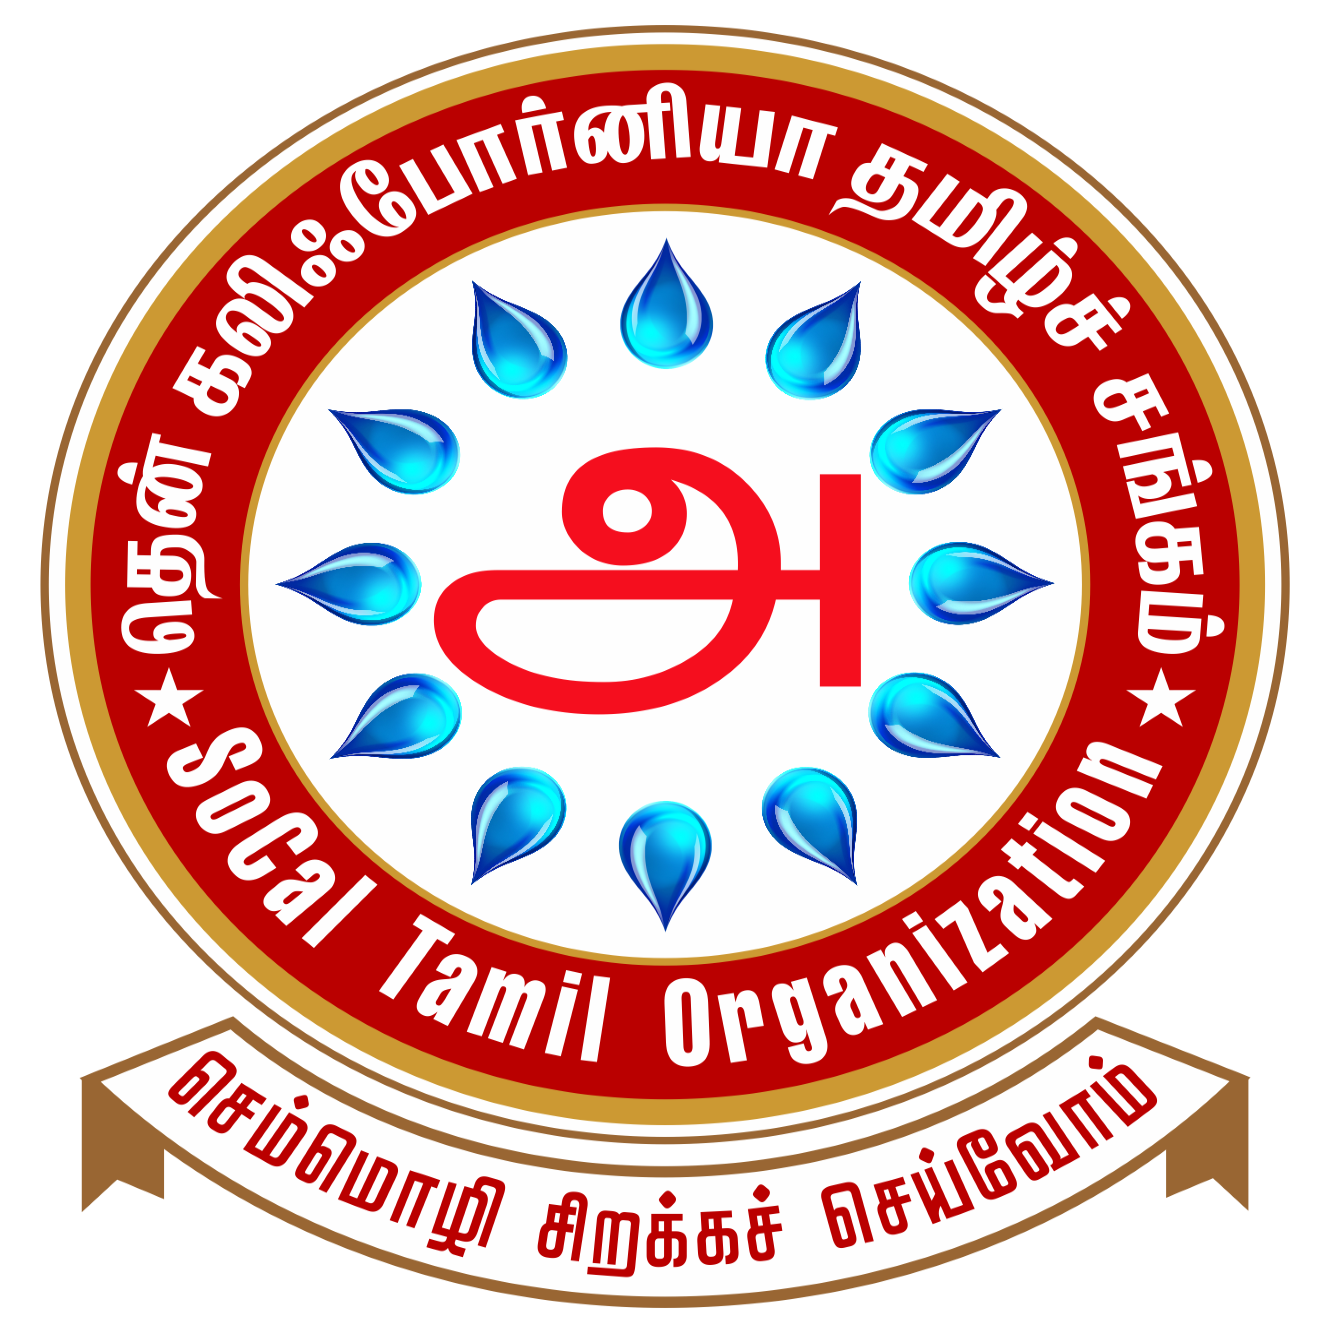 SoCal Tamil Organization logo